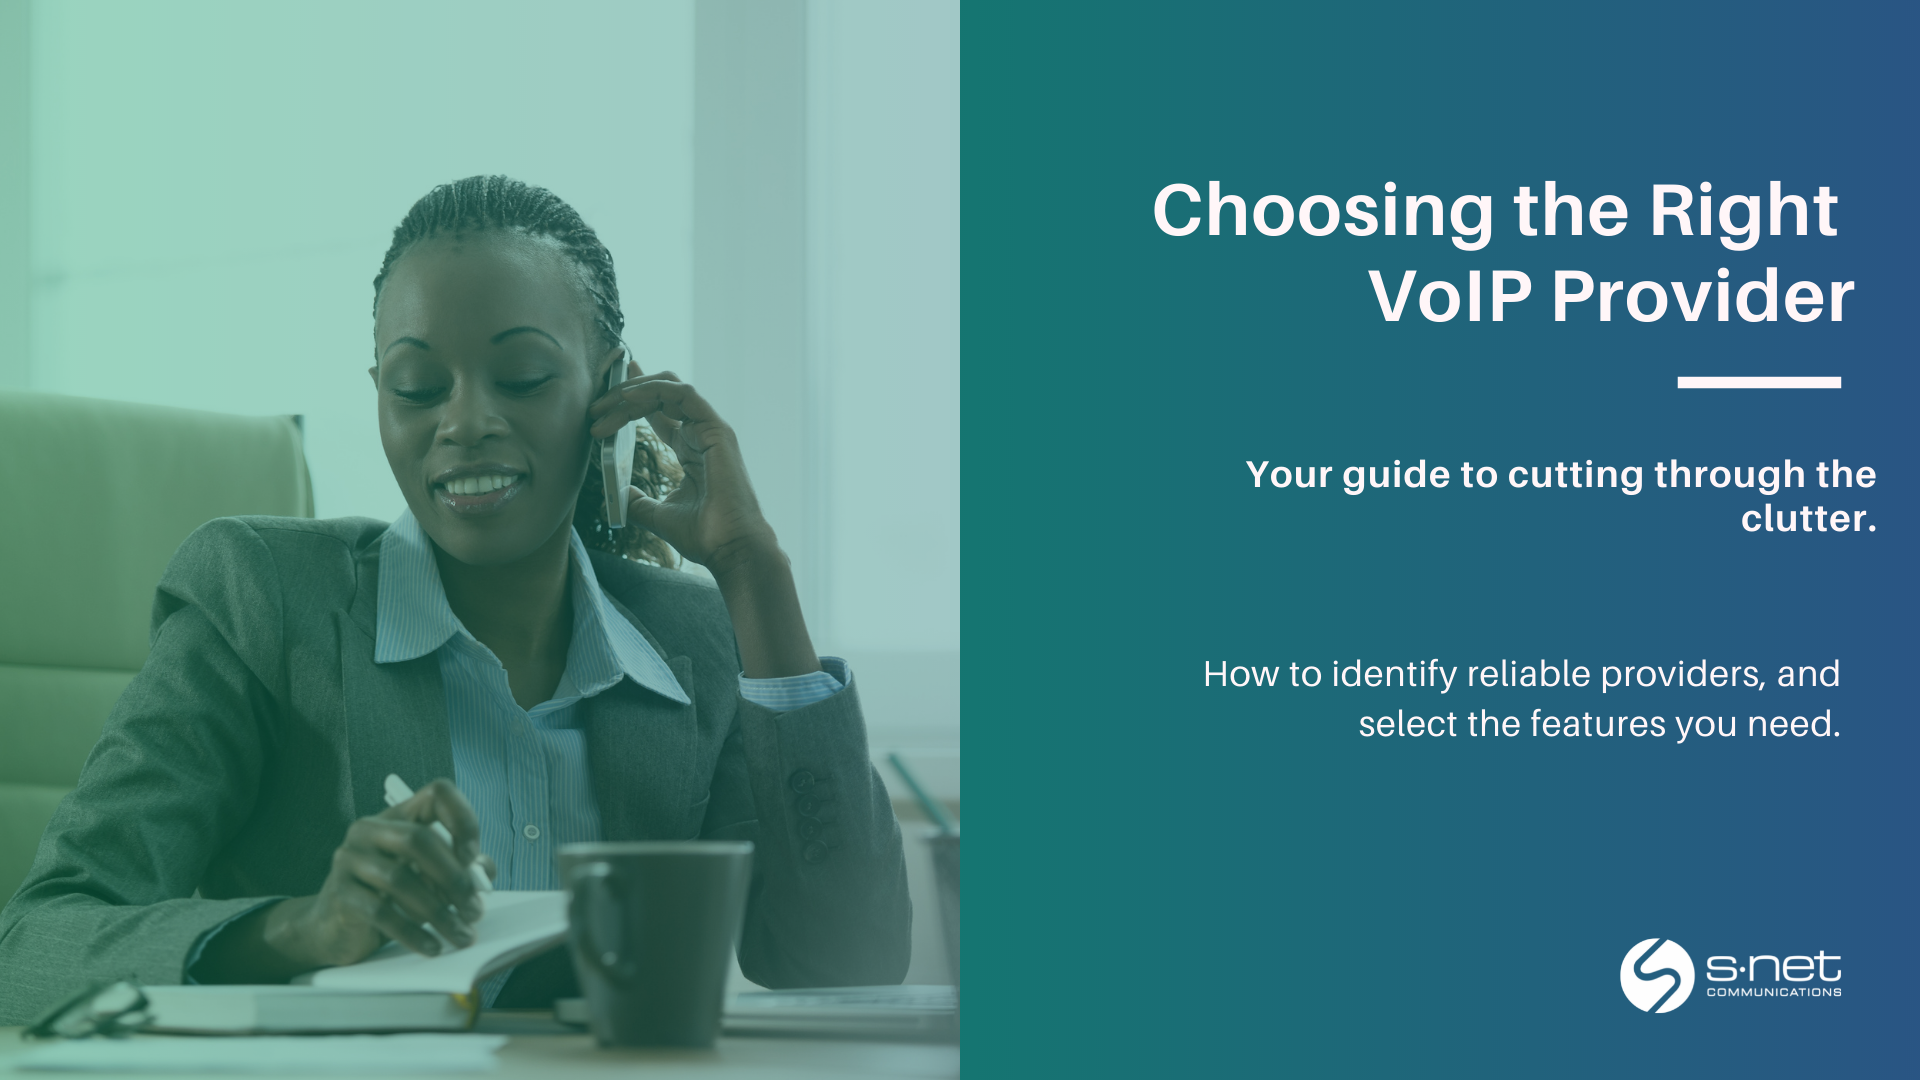 Choosing the right voip provider